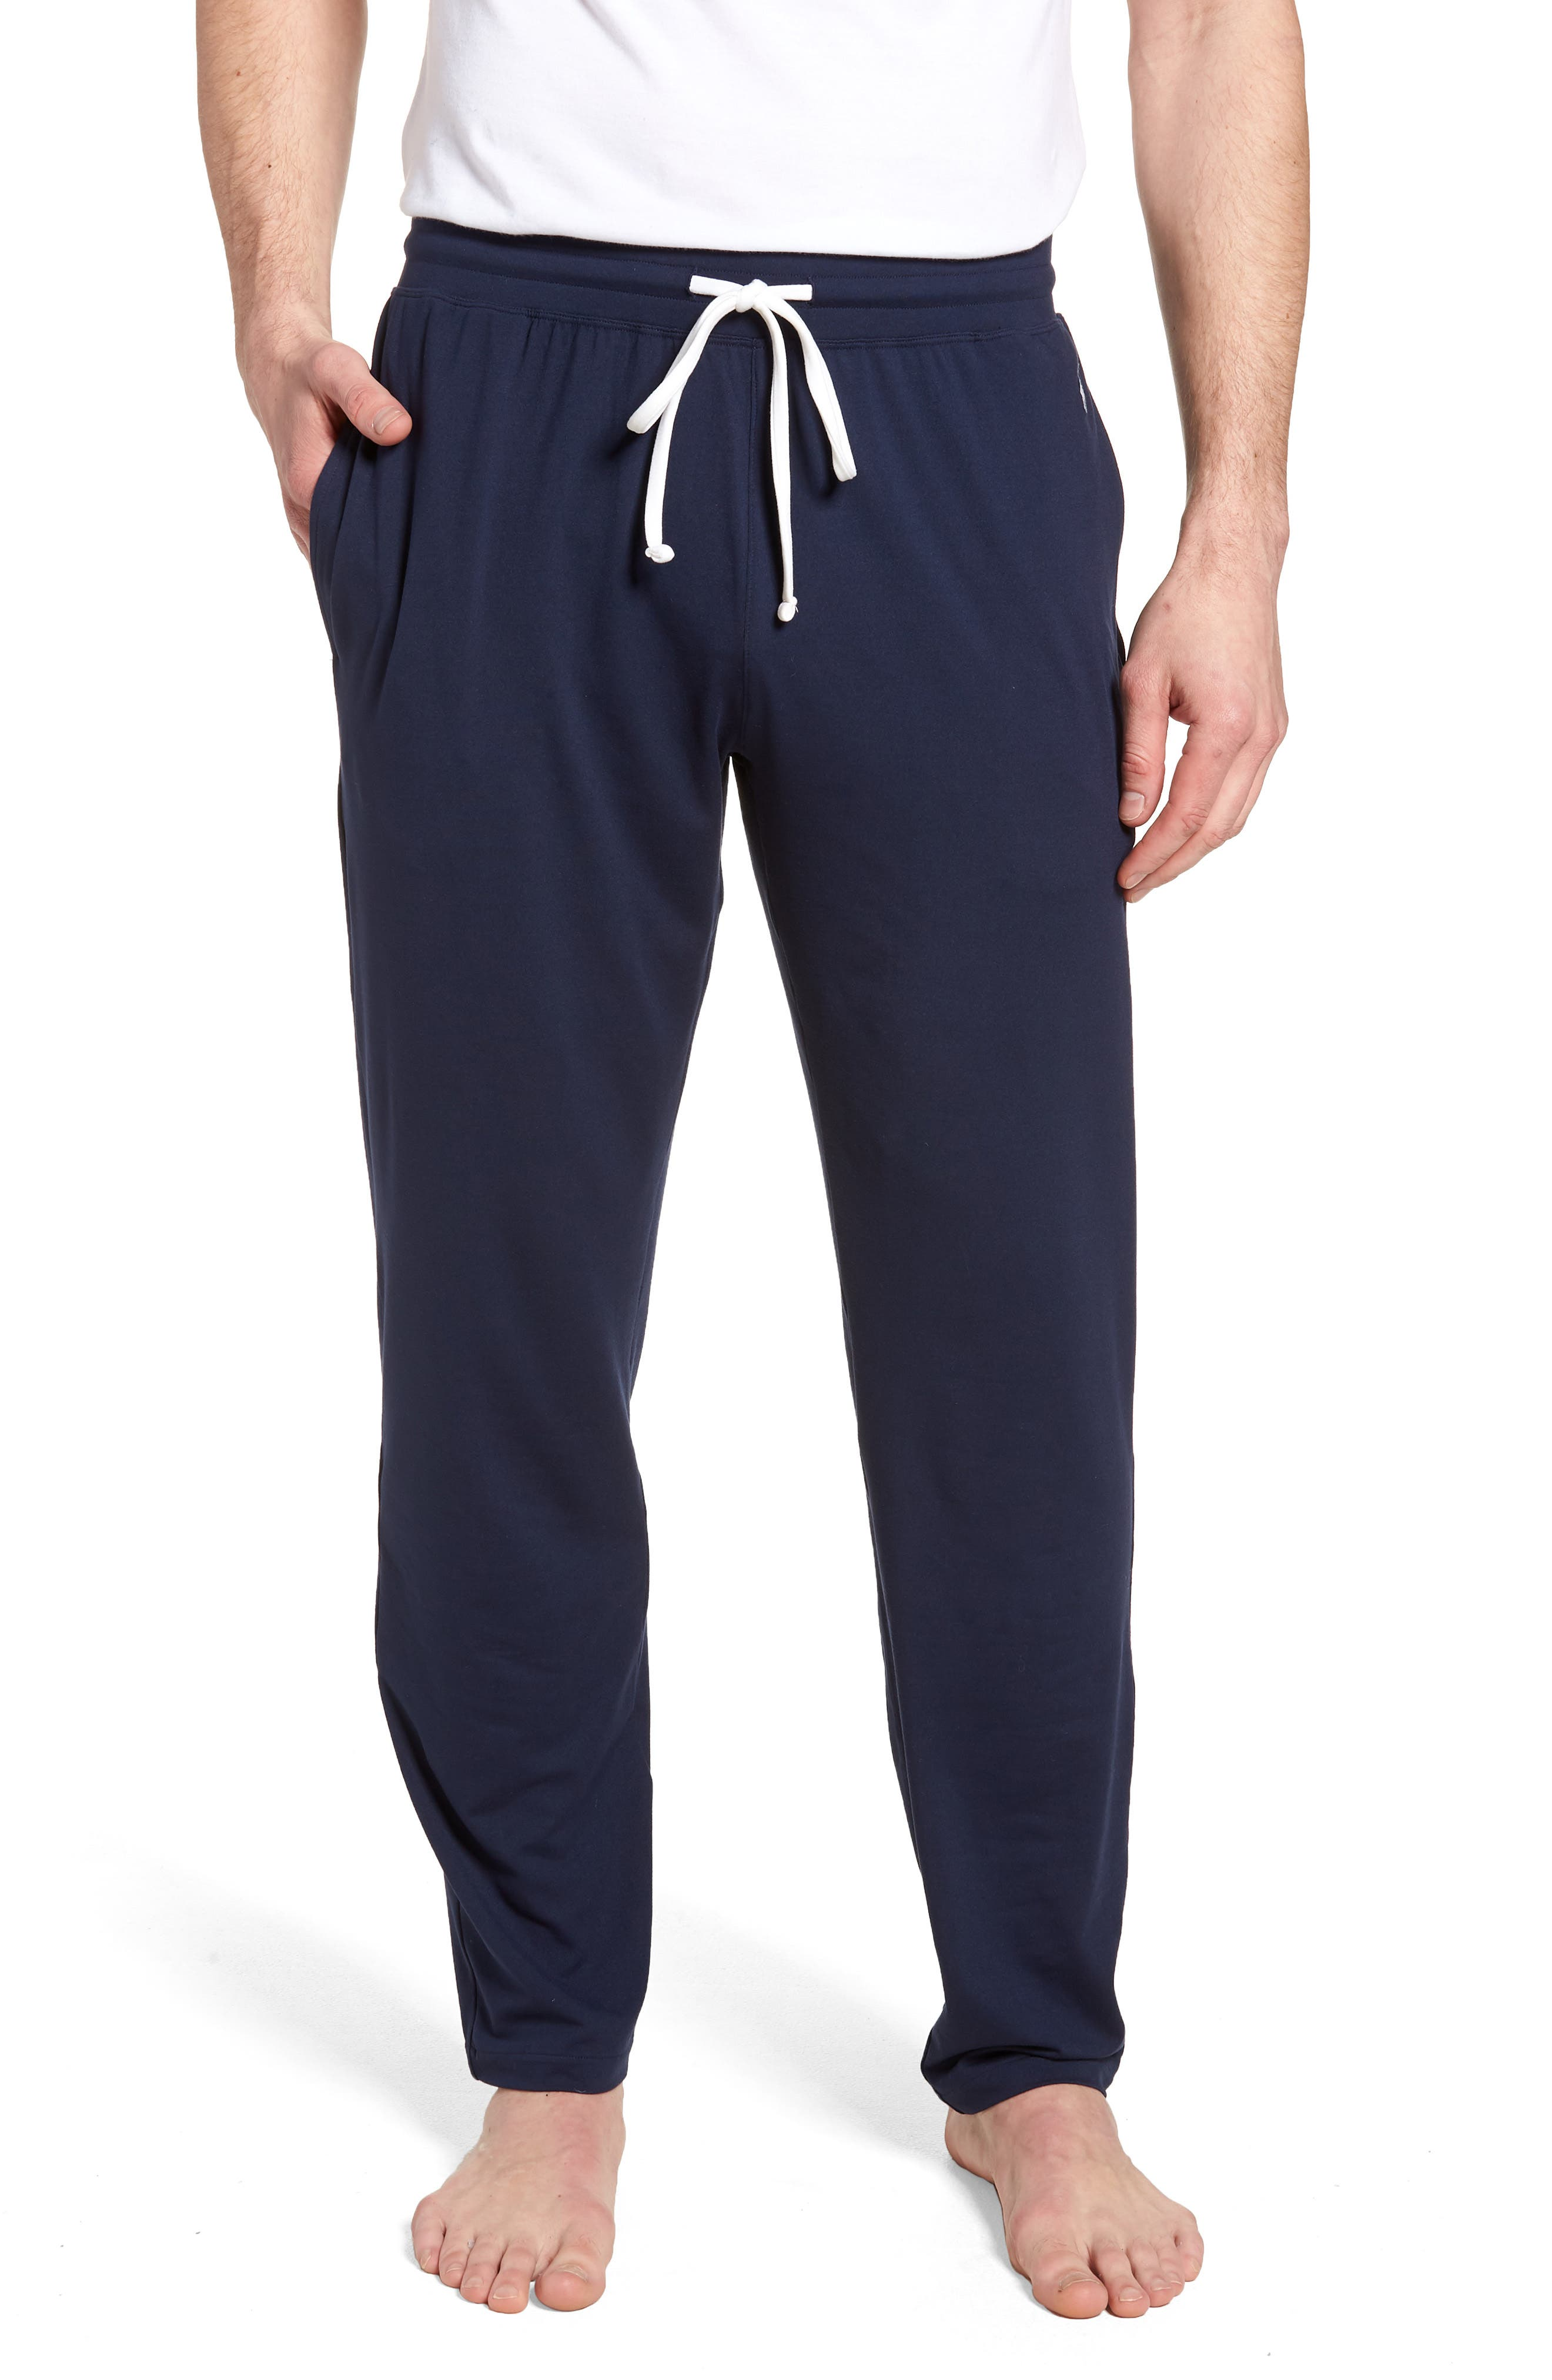 Therma Lounge Pants,                             Main thumbnail 1, color,                             Cruise Navy/ Nevis